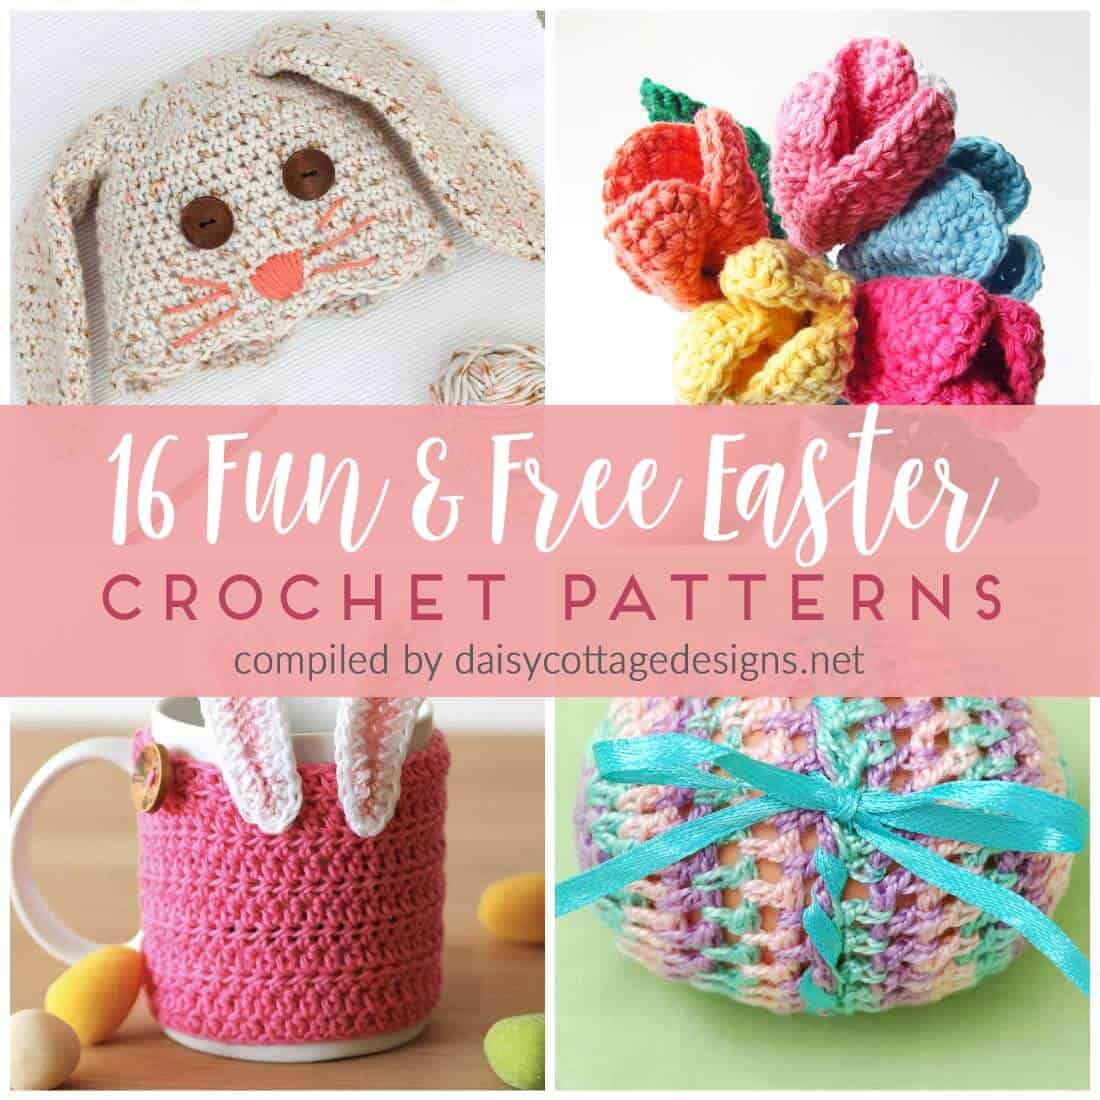 16 Free Crochet Patterns for Easter - Daisy Cottage Designs